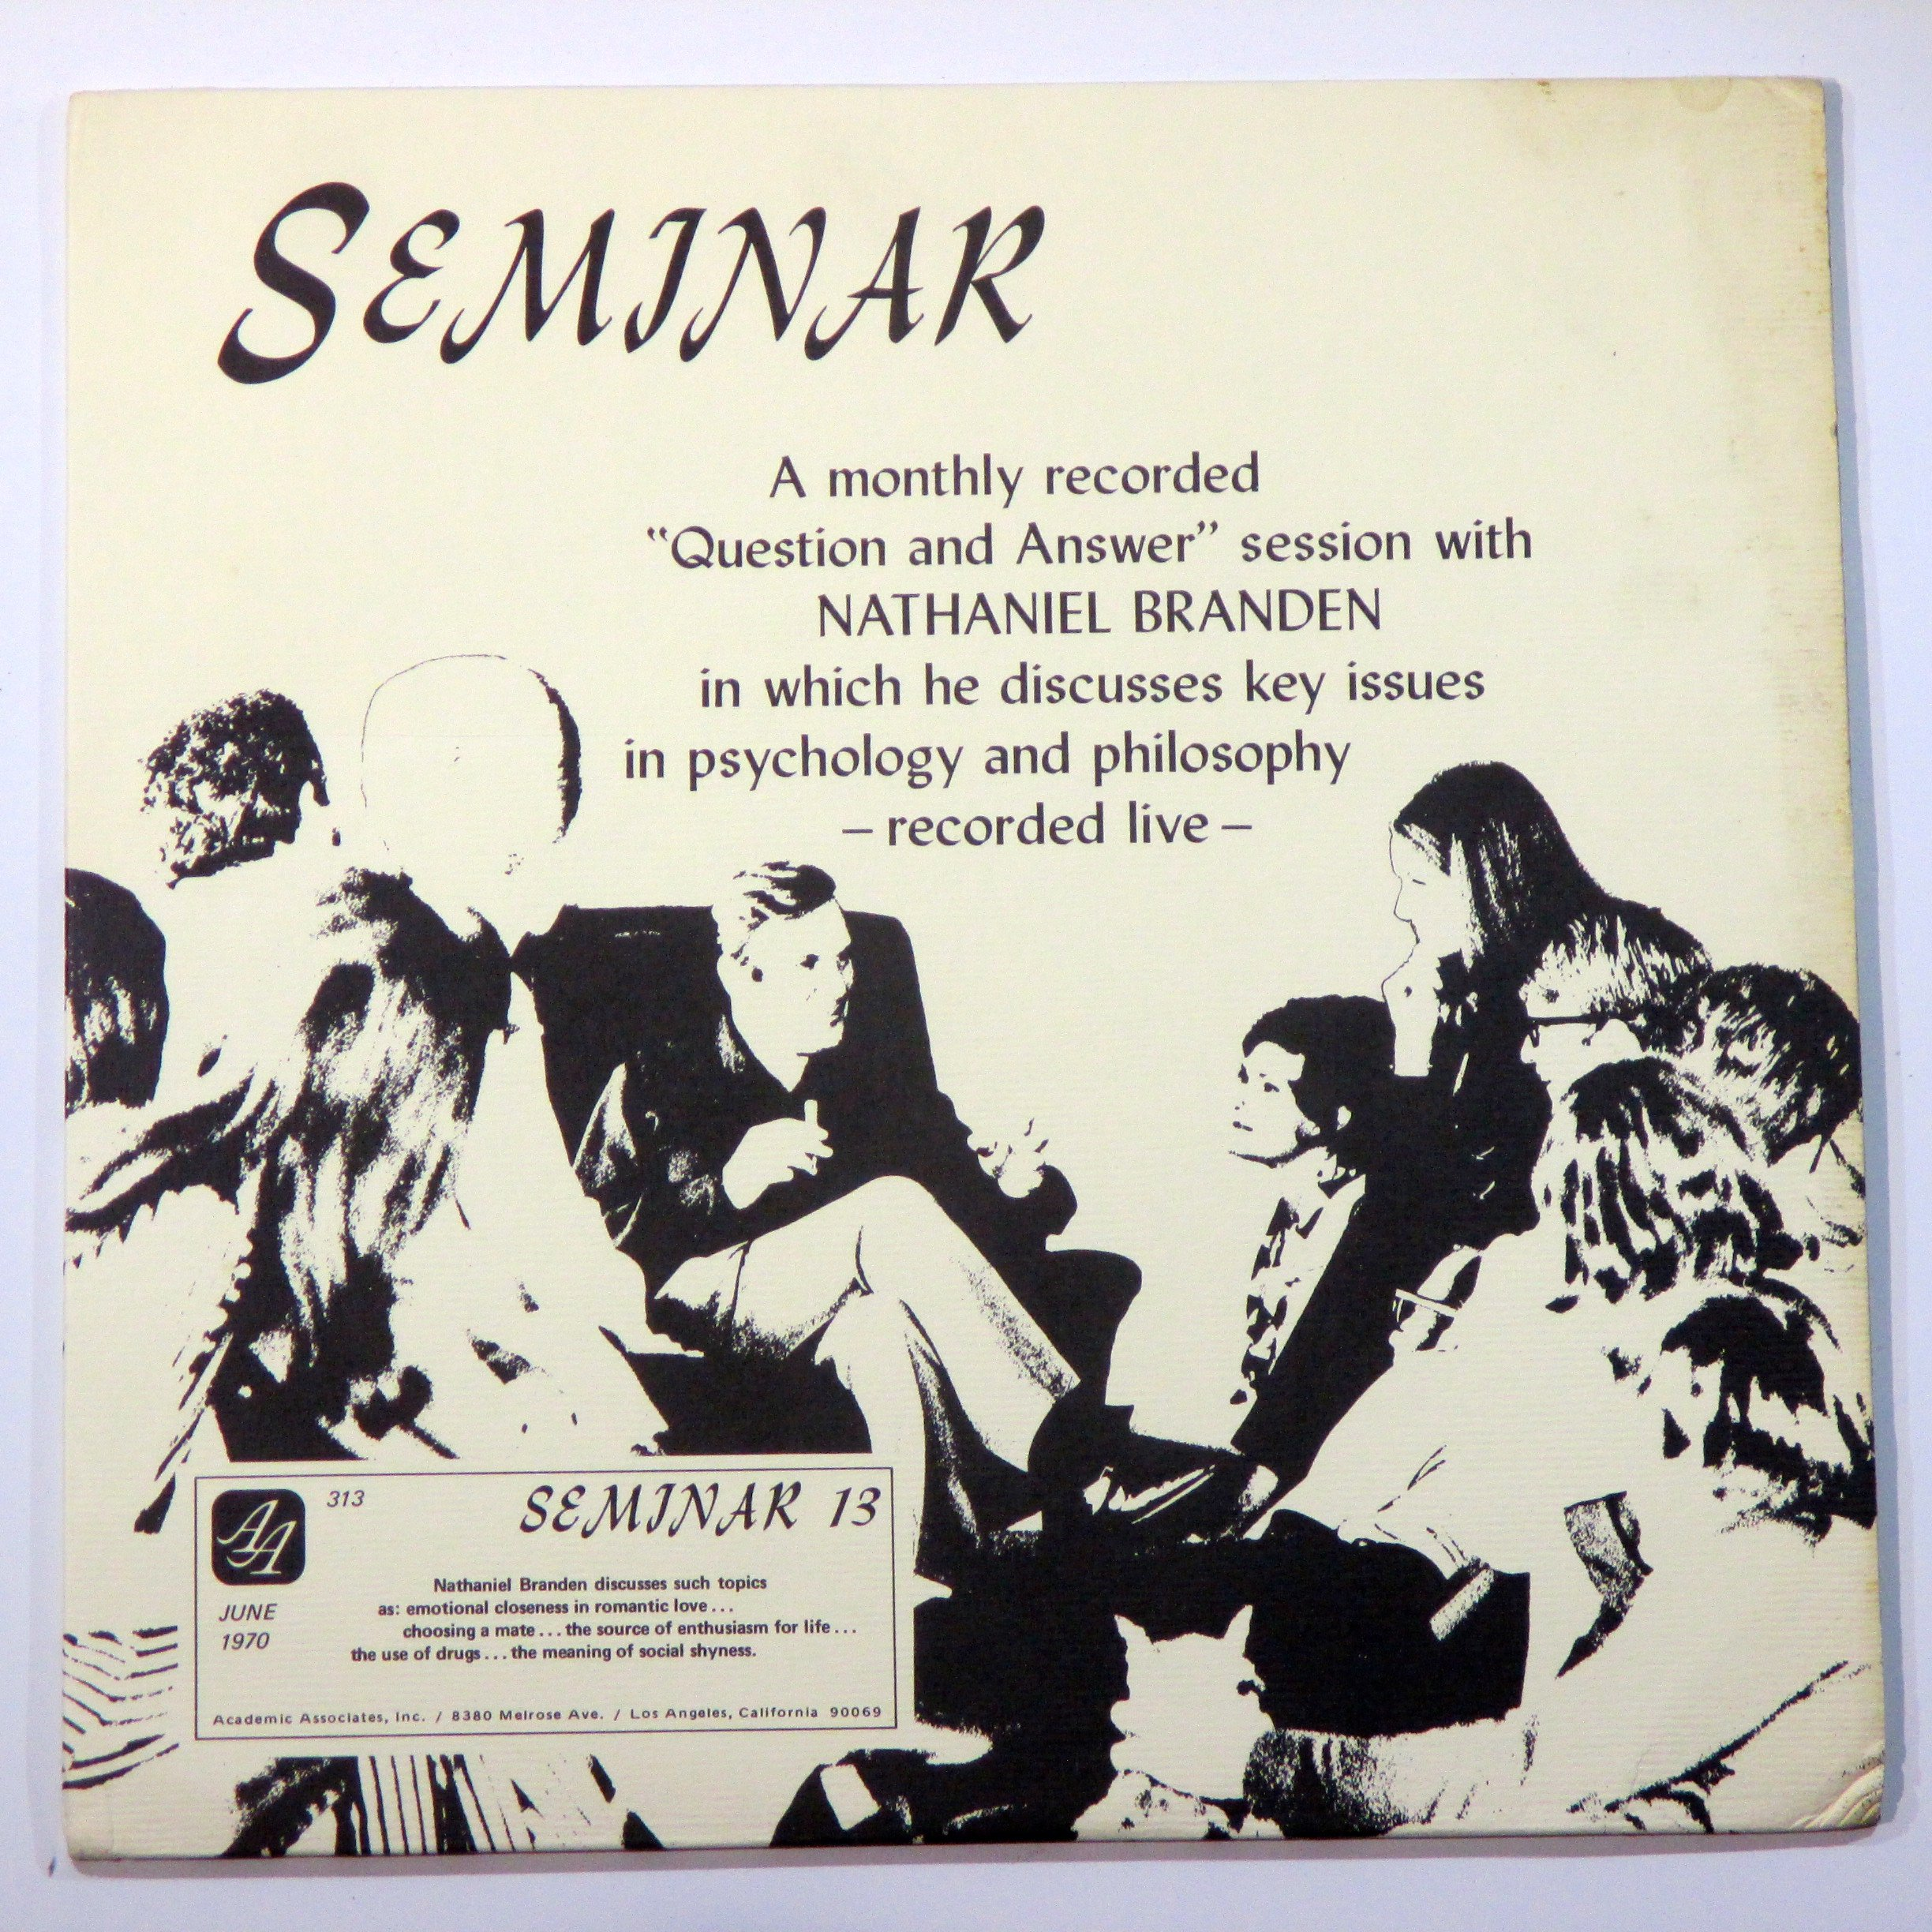 seminar 13 LP by ACADEMIC ASSOCIATES